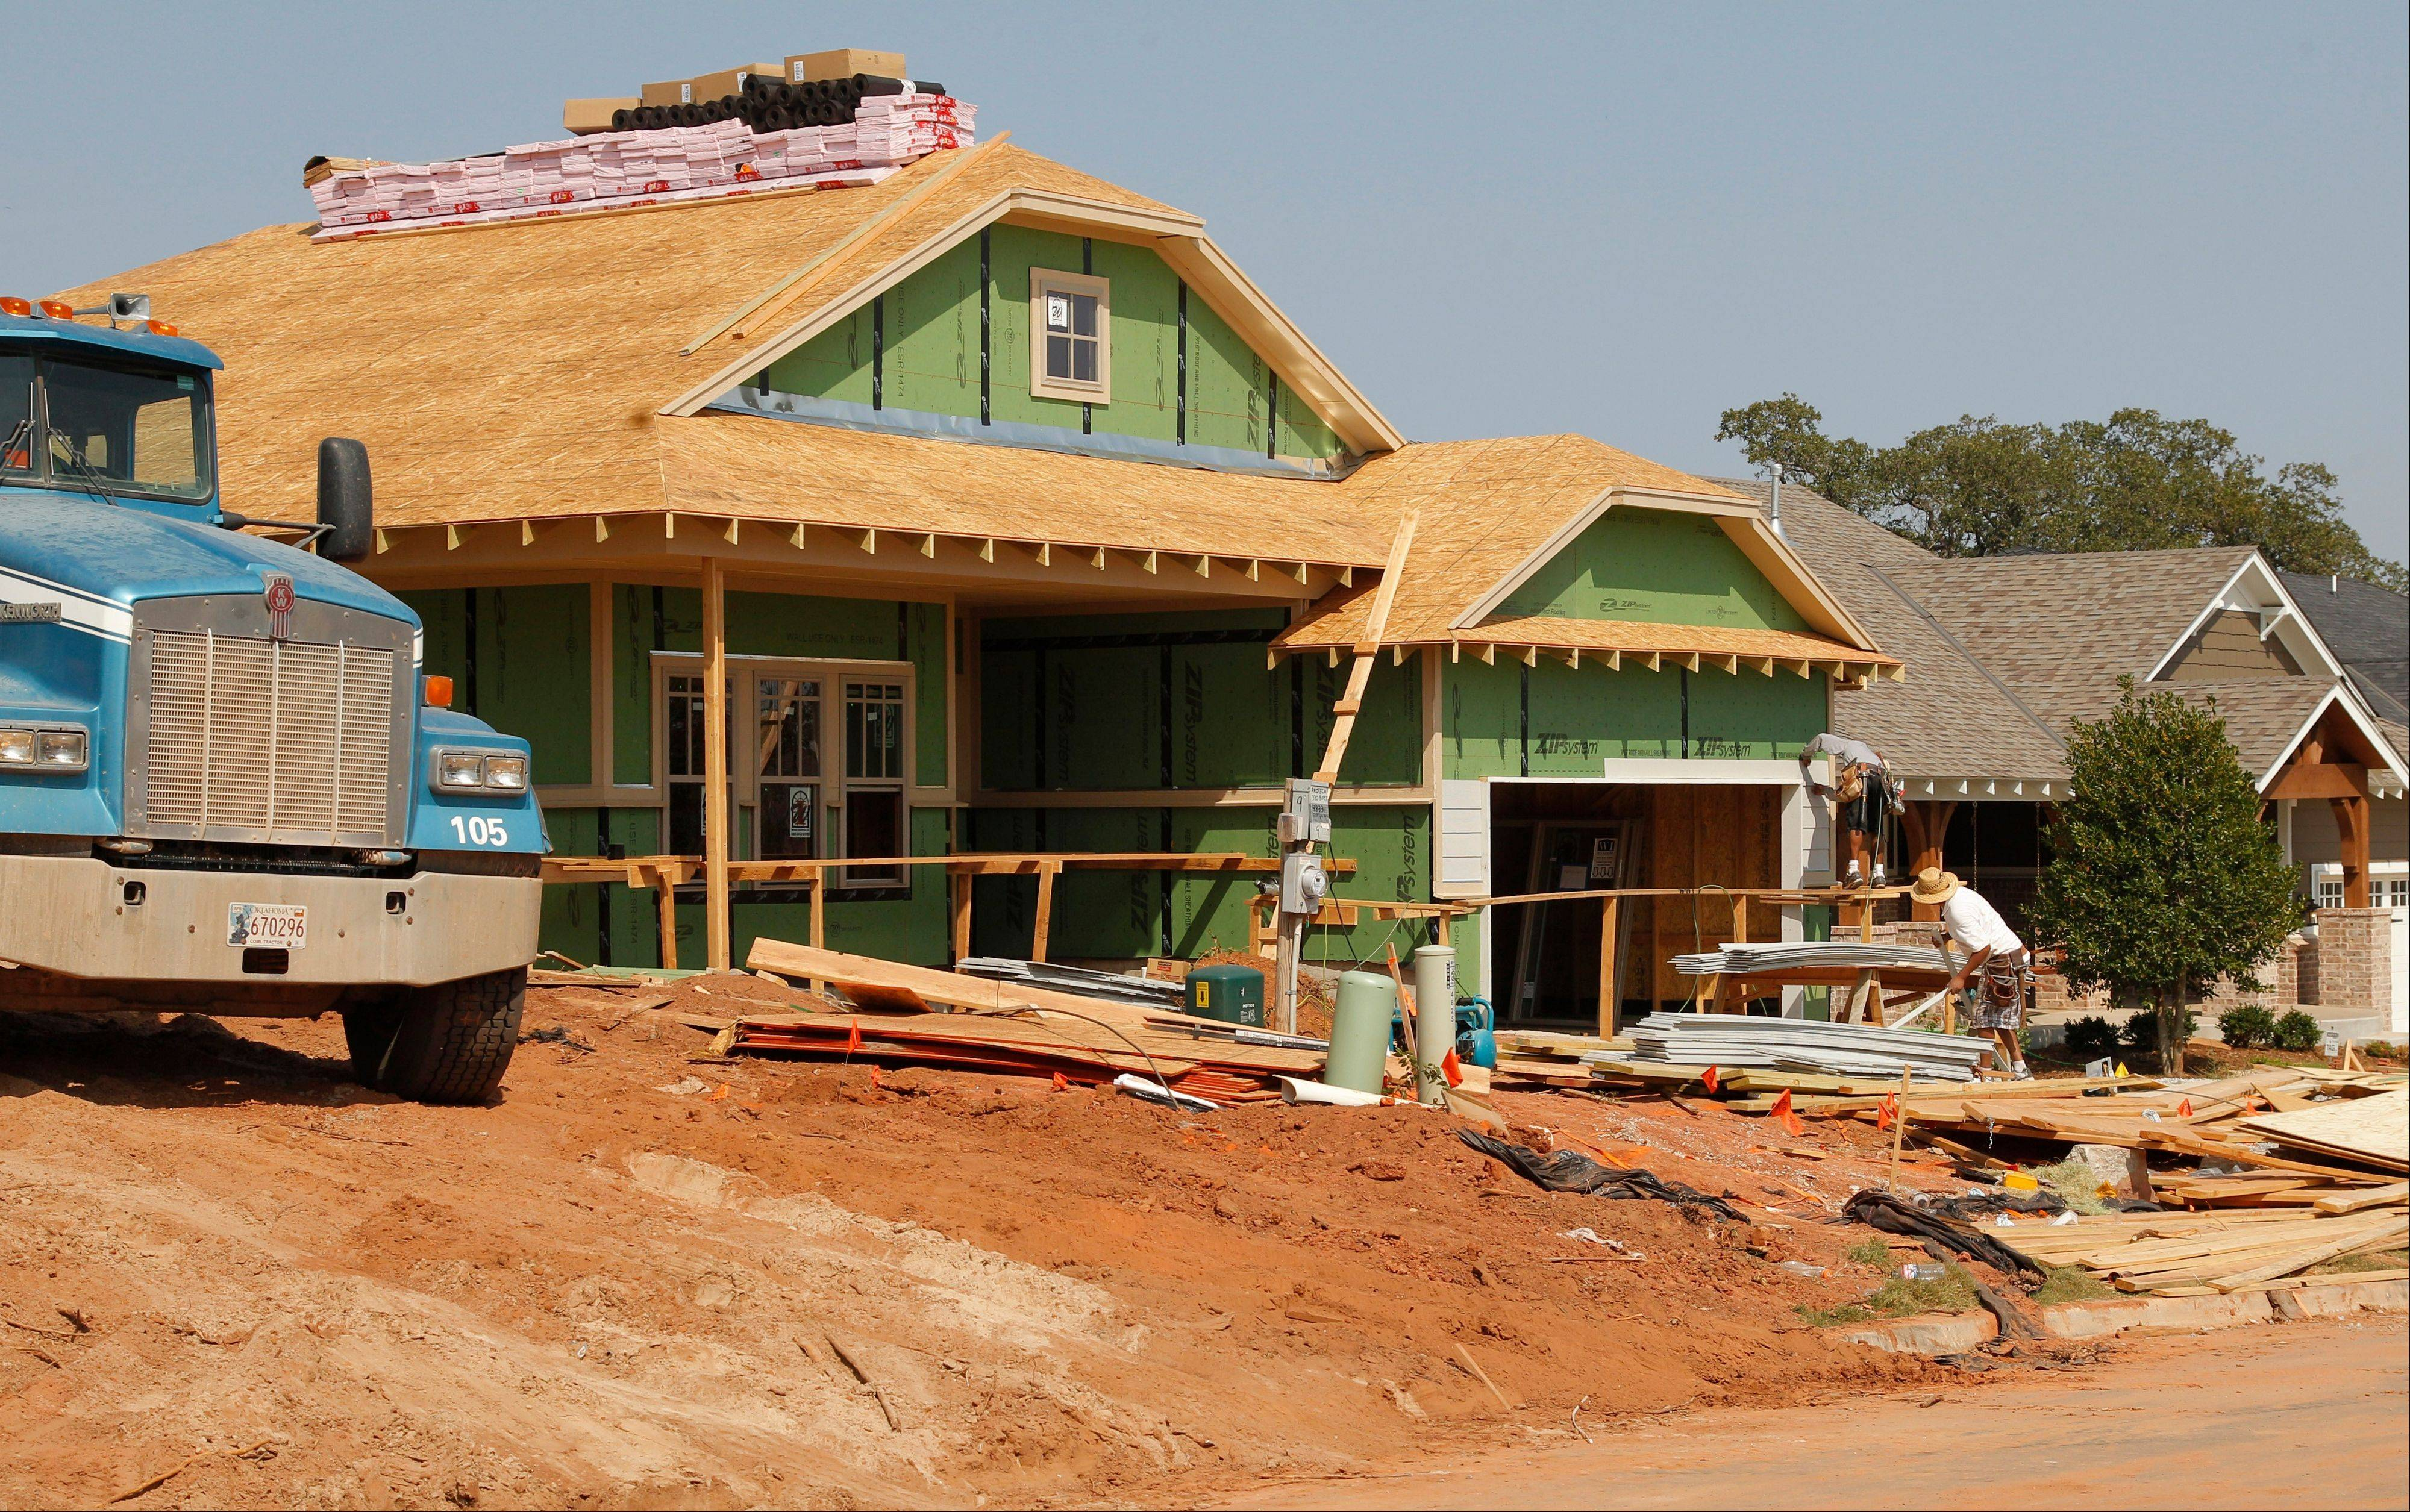 A new home is seen under construction in Edmond, Okla. U.S. sales of new homes jumped in September to the highest level in more than two years, further evidence of a sustained housing recovery that could help lift the lackluster economy.